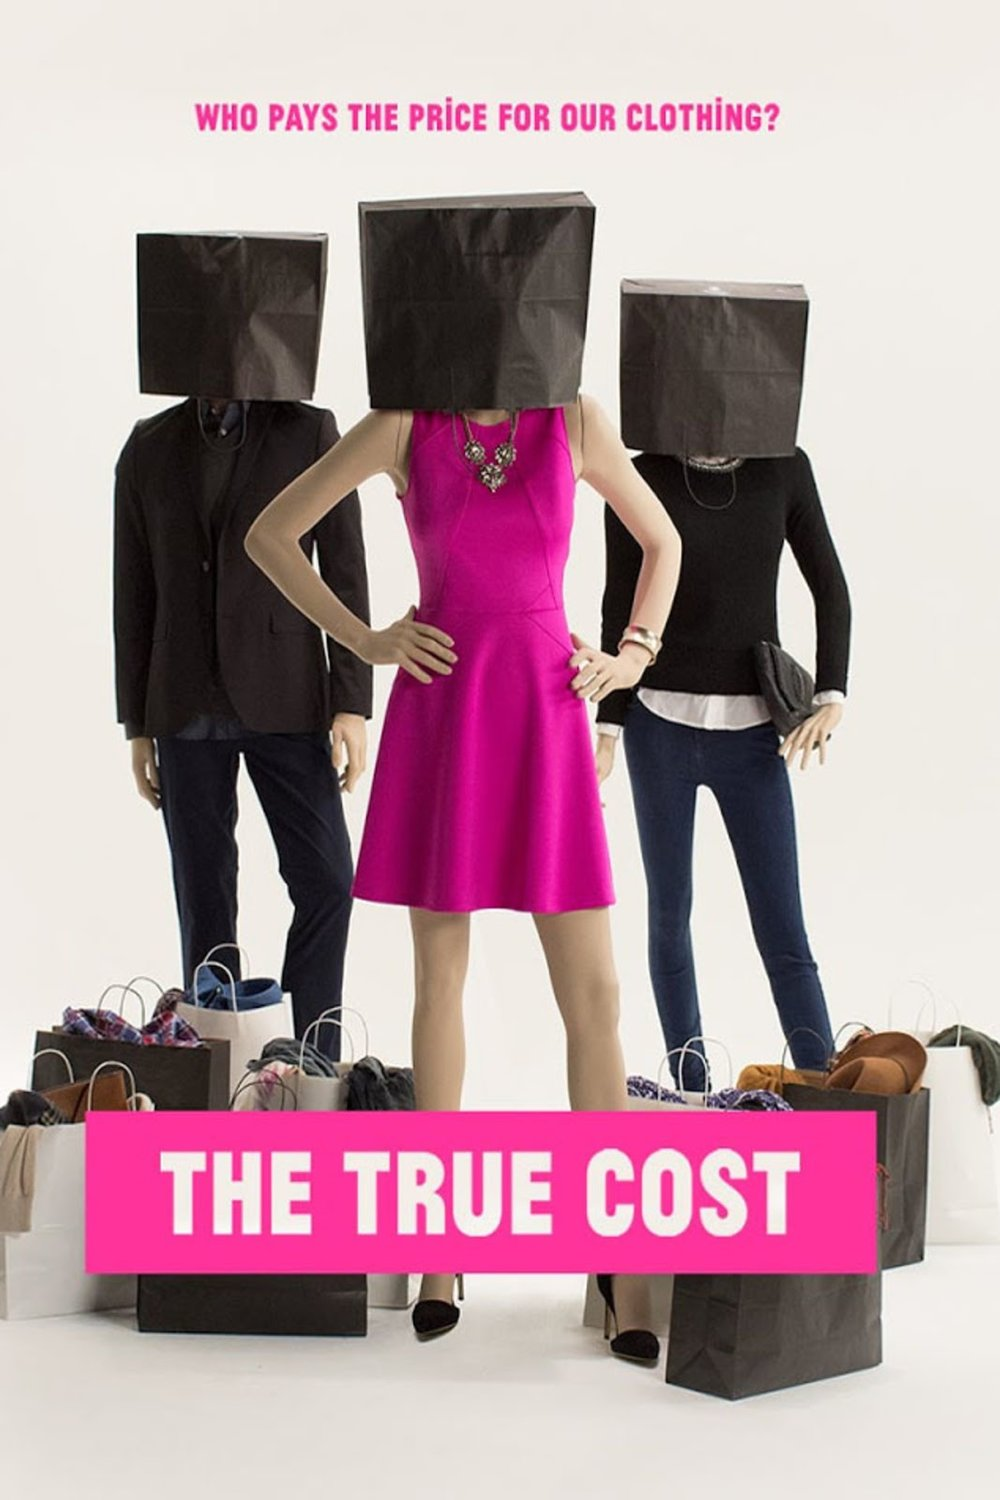 The True Cost - This is a story about clothing. It's about the clothes we wear, the people who make them, and the impact the industry is having on our world. The price of clothing has been decreasing for decades, while the human and environmental costs have grown dramatically. The True Cost is a groundbreaking documentary film that pulls back the curtain on the untold story and asks us to consider, who really pays the price for our clothing?